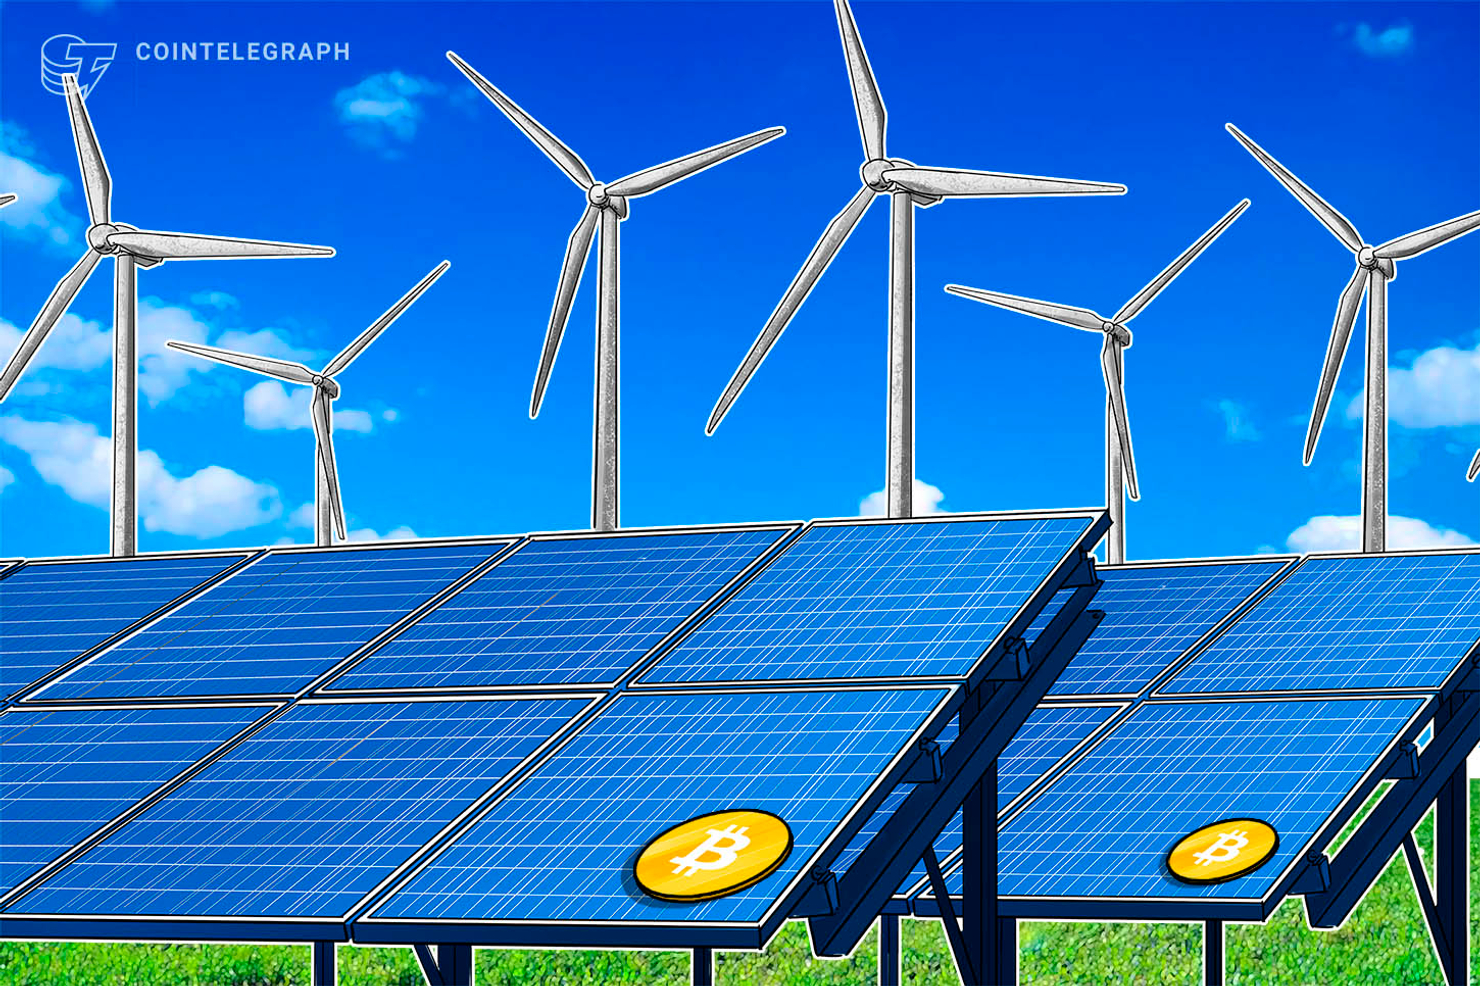 Study: Over 74% of Bitcoin Mining is Powered by Renewable Energy